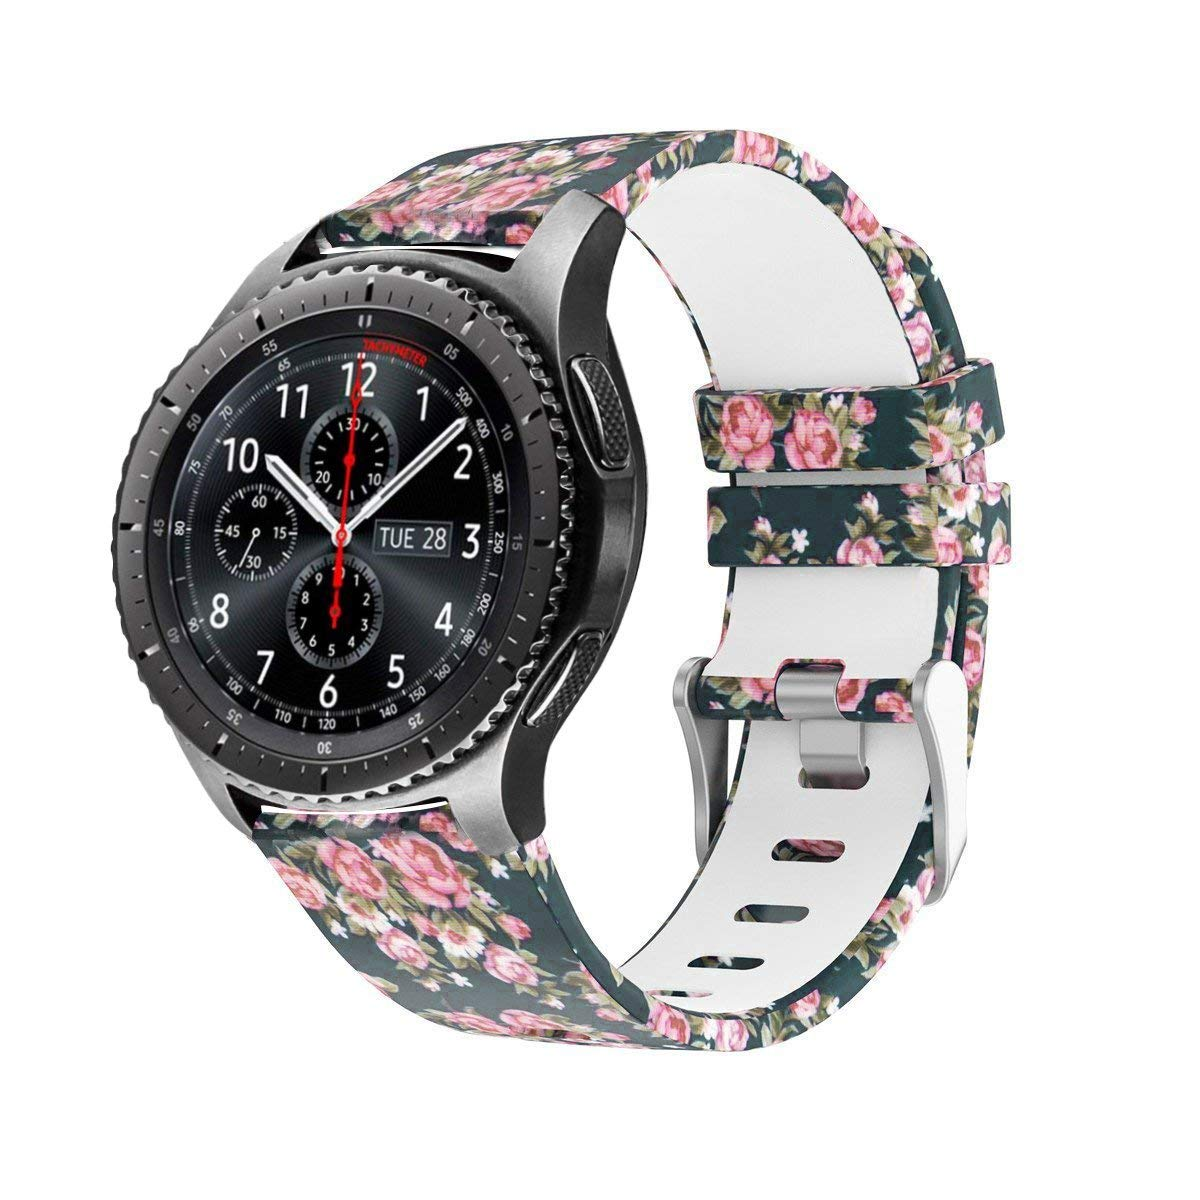 Galaxy Watch 46mm / Gear S3 Bands,LitoDream Soft Silicone Strap Replacement S3 Frontier Band Flower Wristbands for Samsung Gear S3 Classic Frontier Smartwatch (Blue Rose)